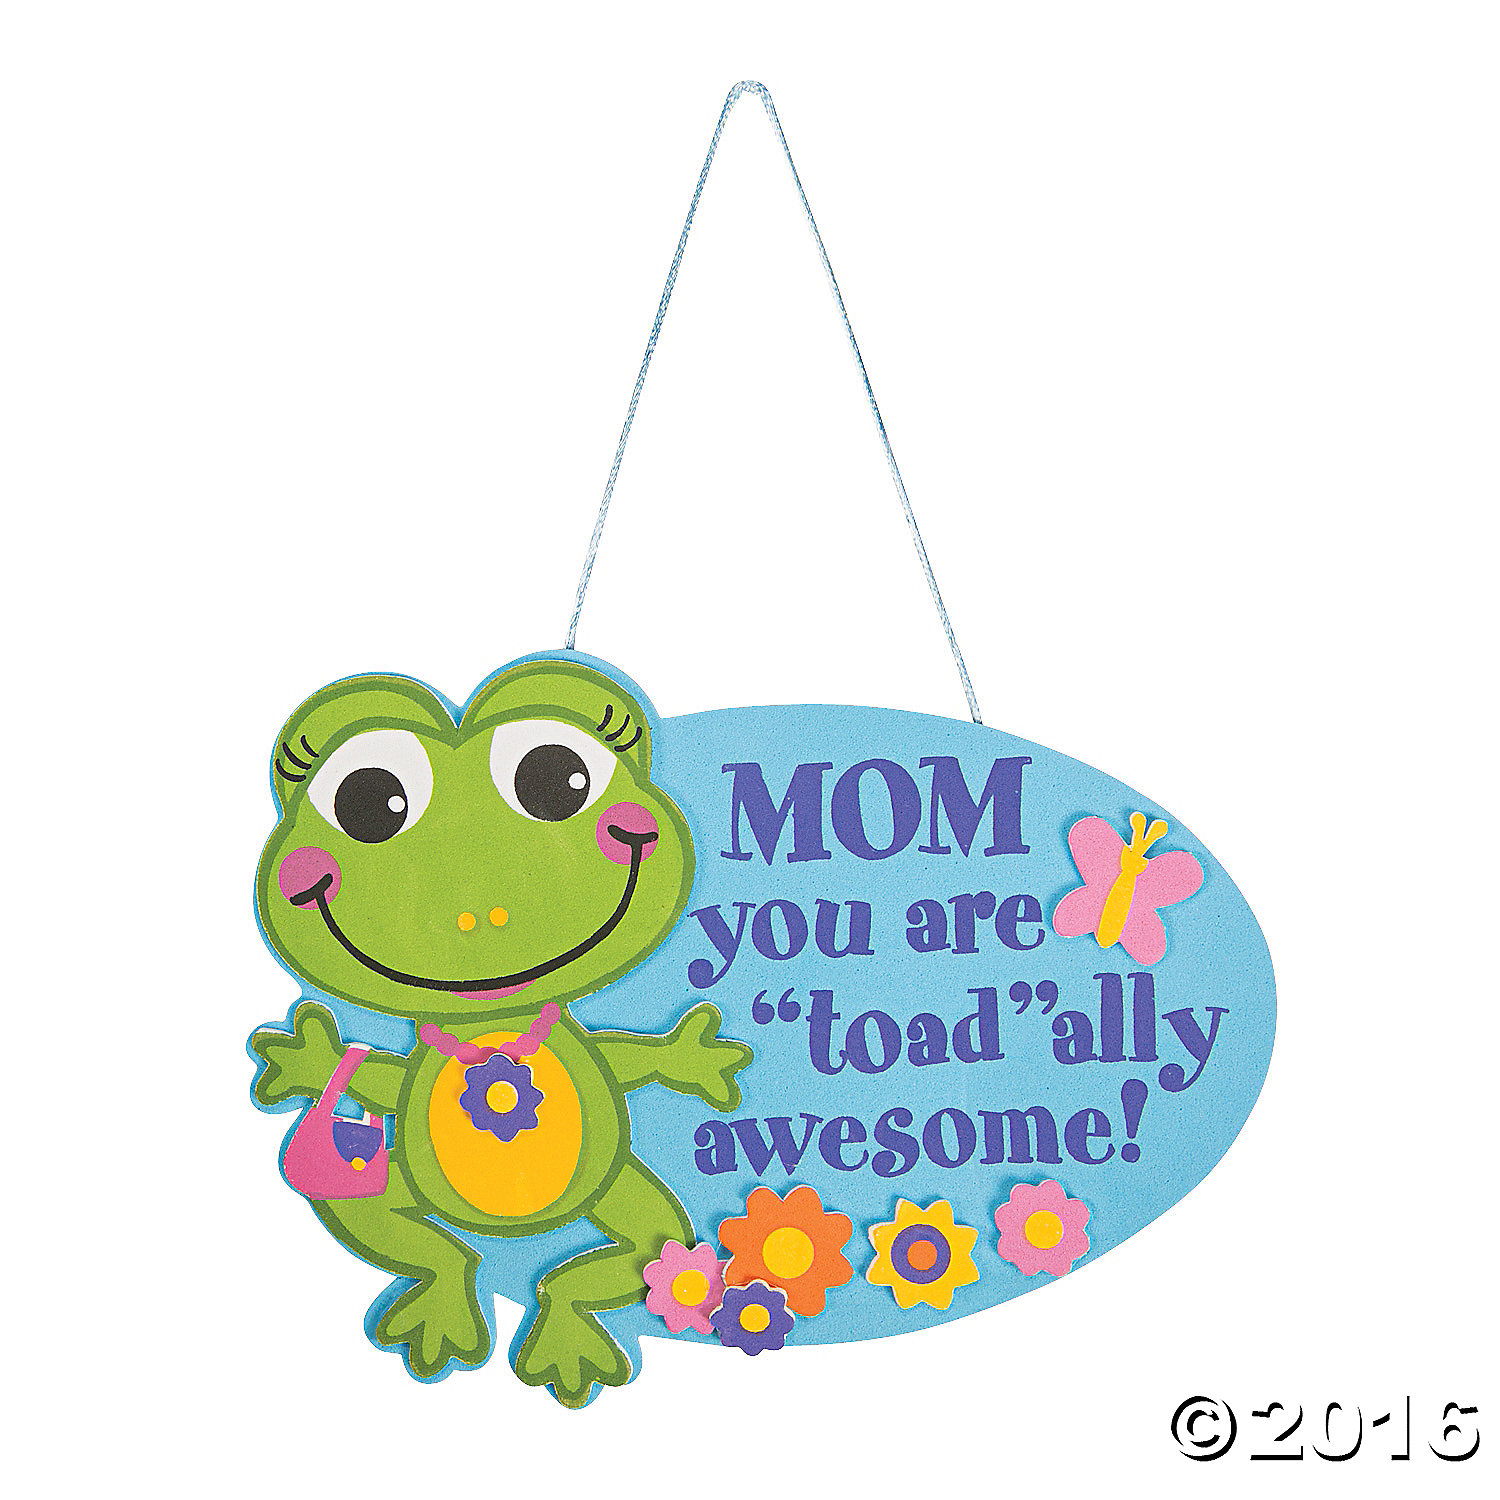 Toadally awesome mom sign craft kit 12 pk party supplies for Mother s day craft kits